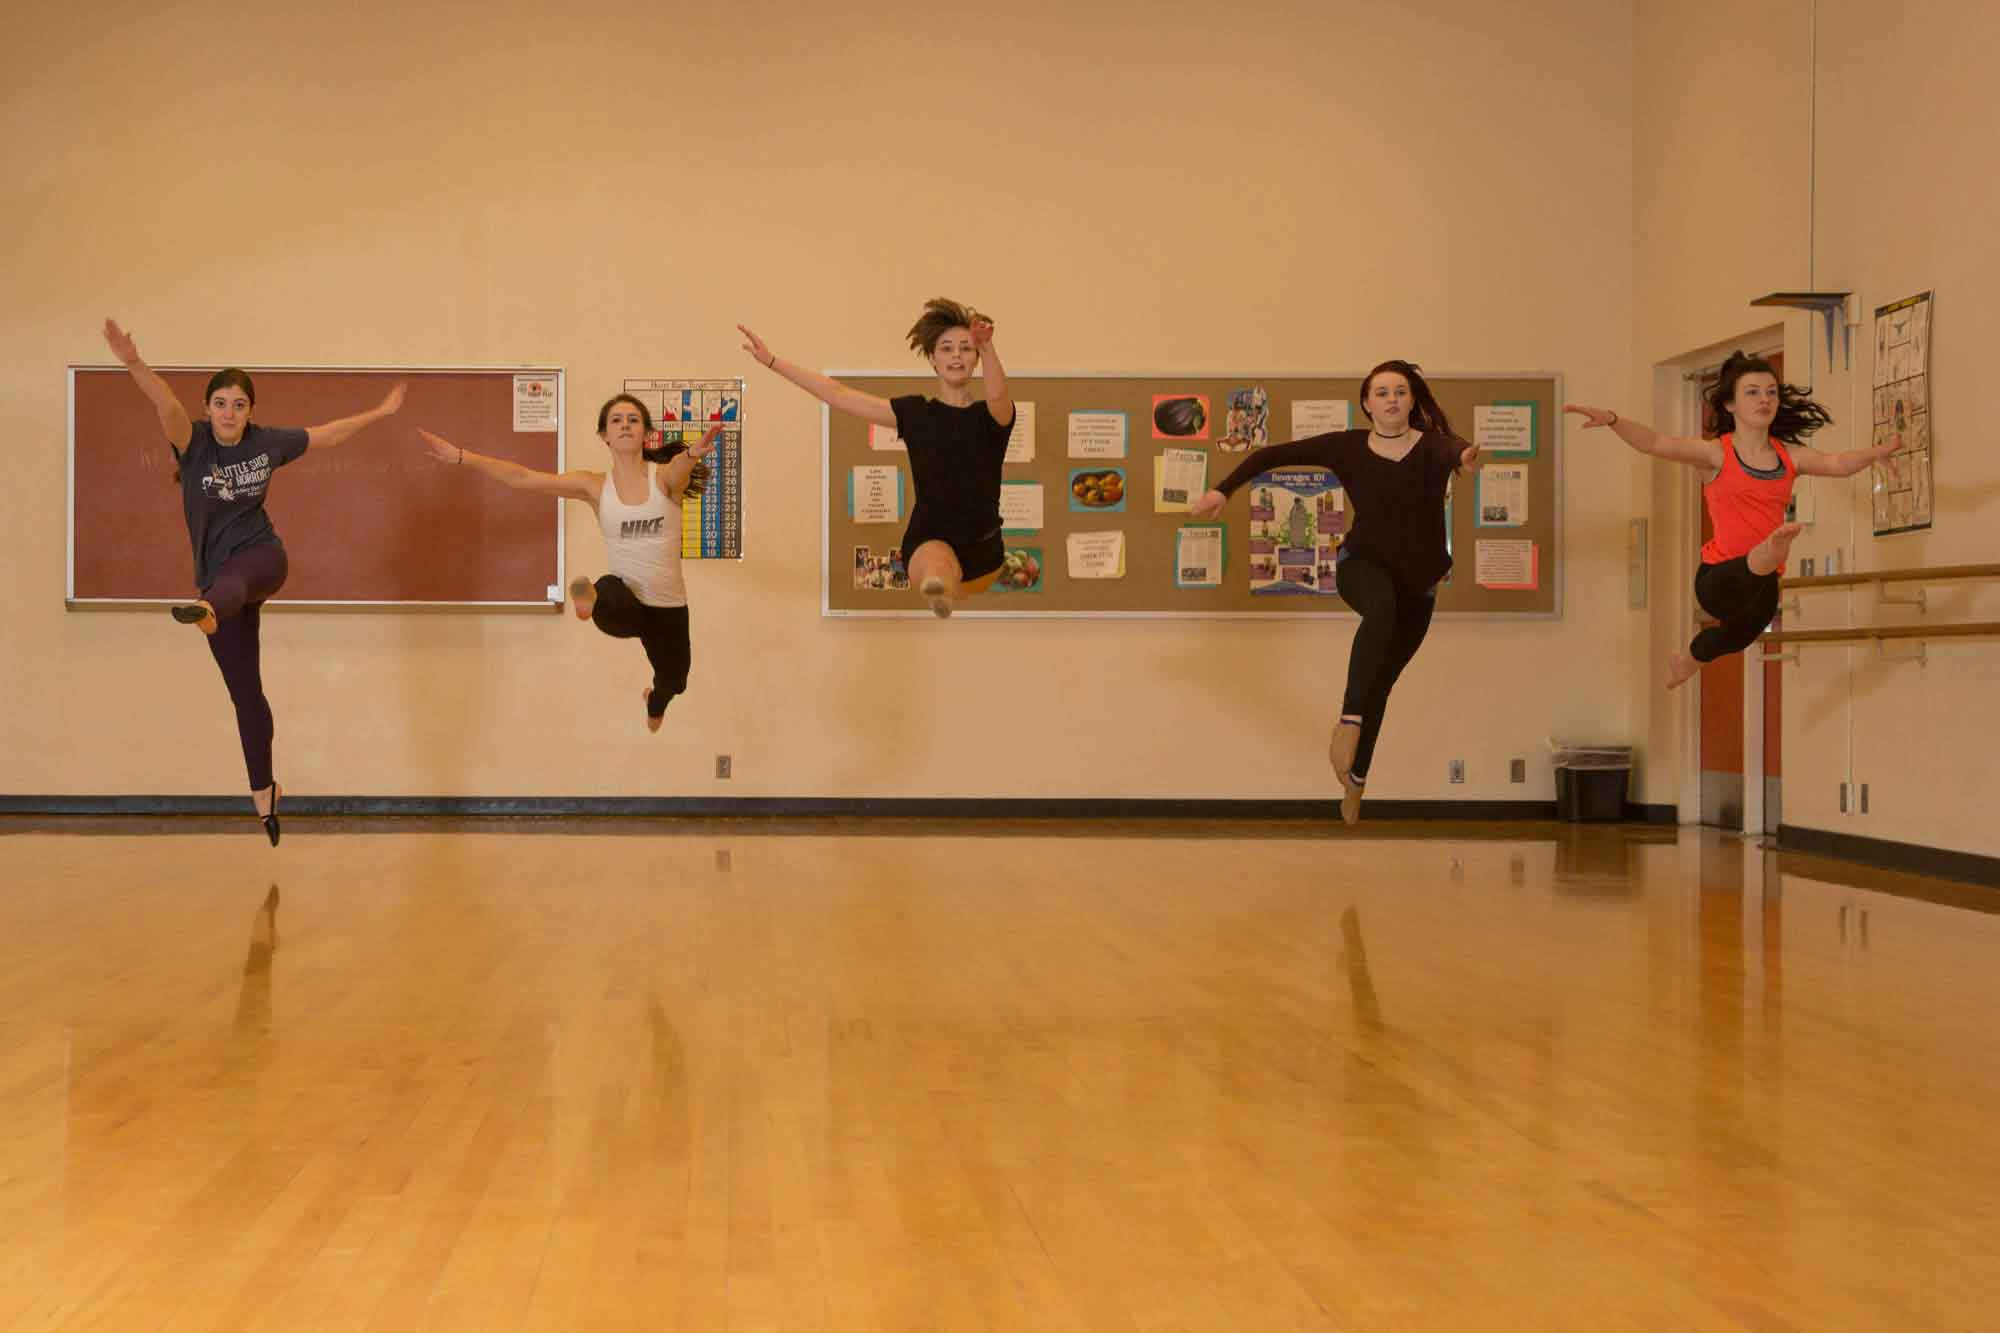 Students in ballet class